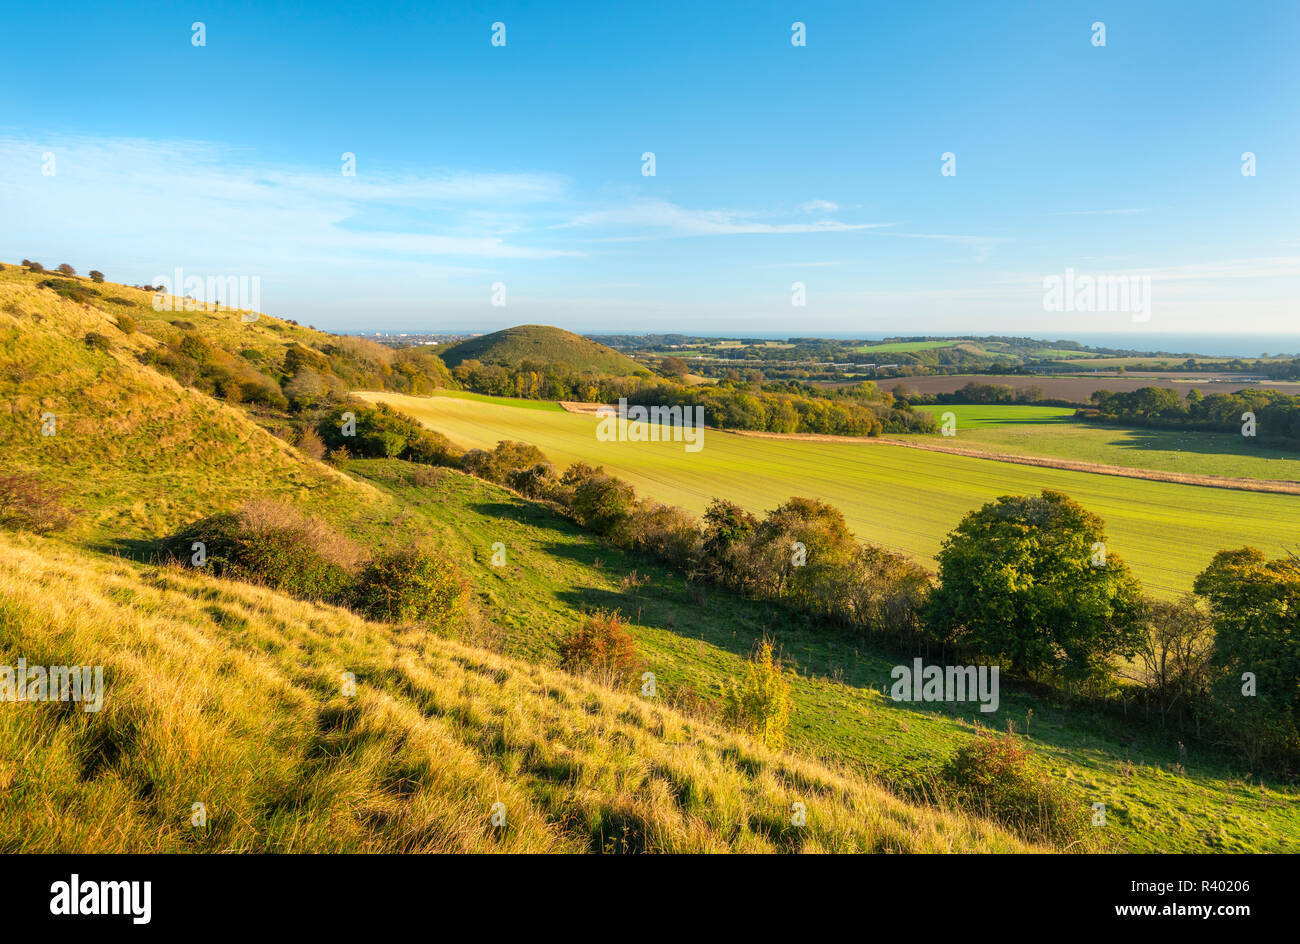 A view from the Kent Downs near Folkestone towards the iconic shape of Summerhouse Hill. - Stock Image